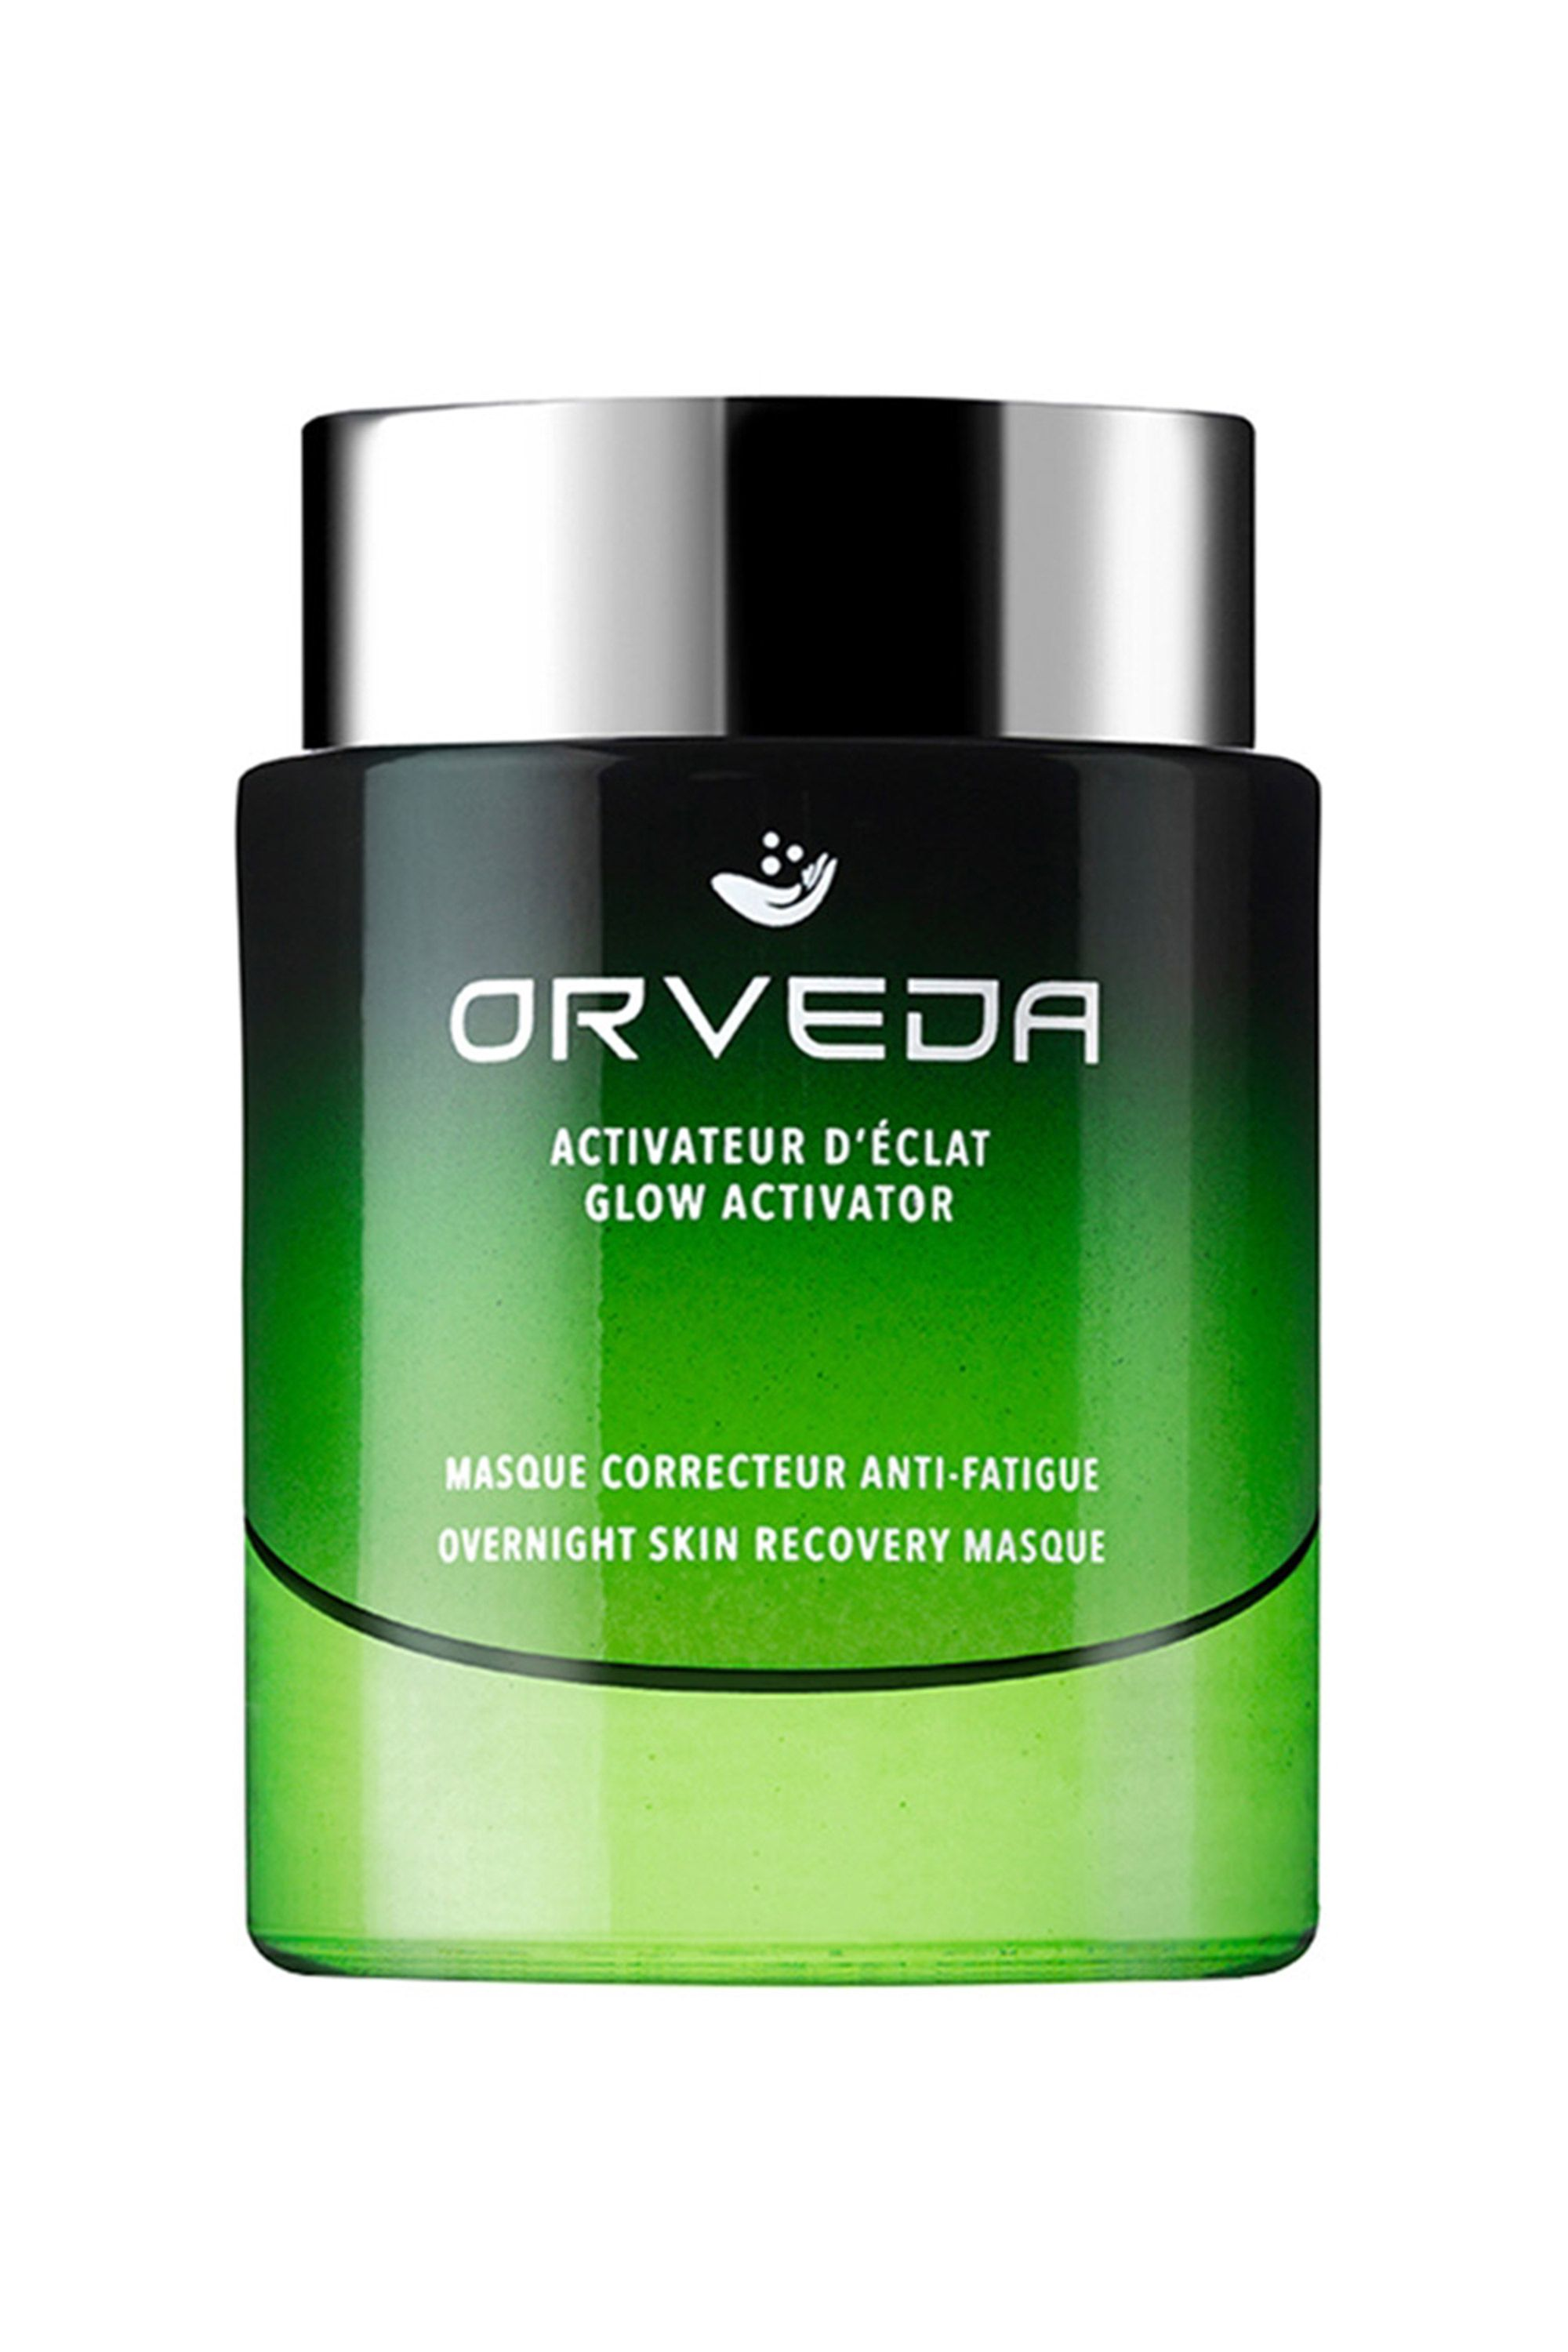 Orveda recovery masque